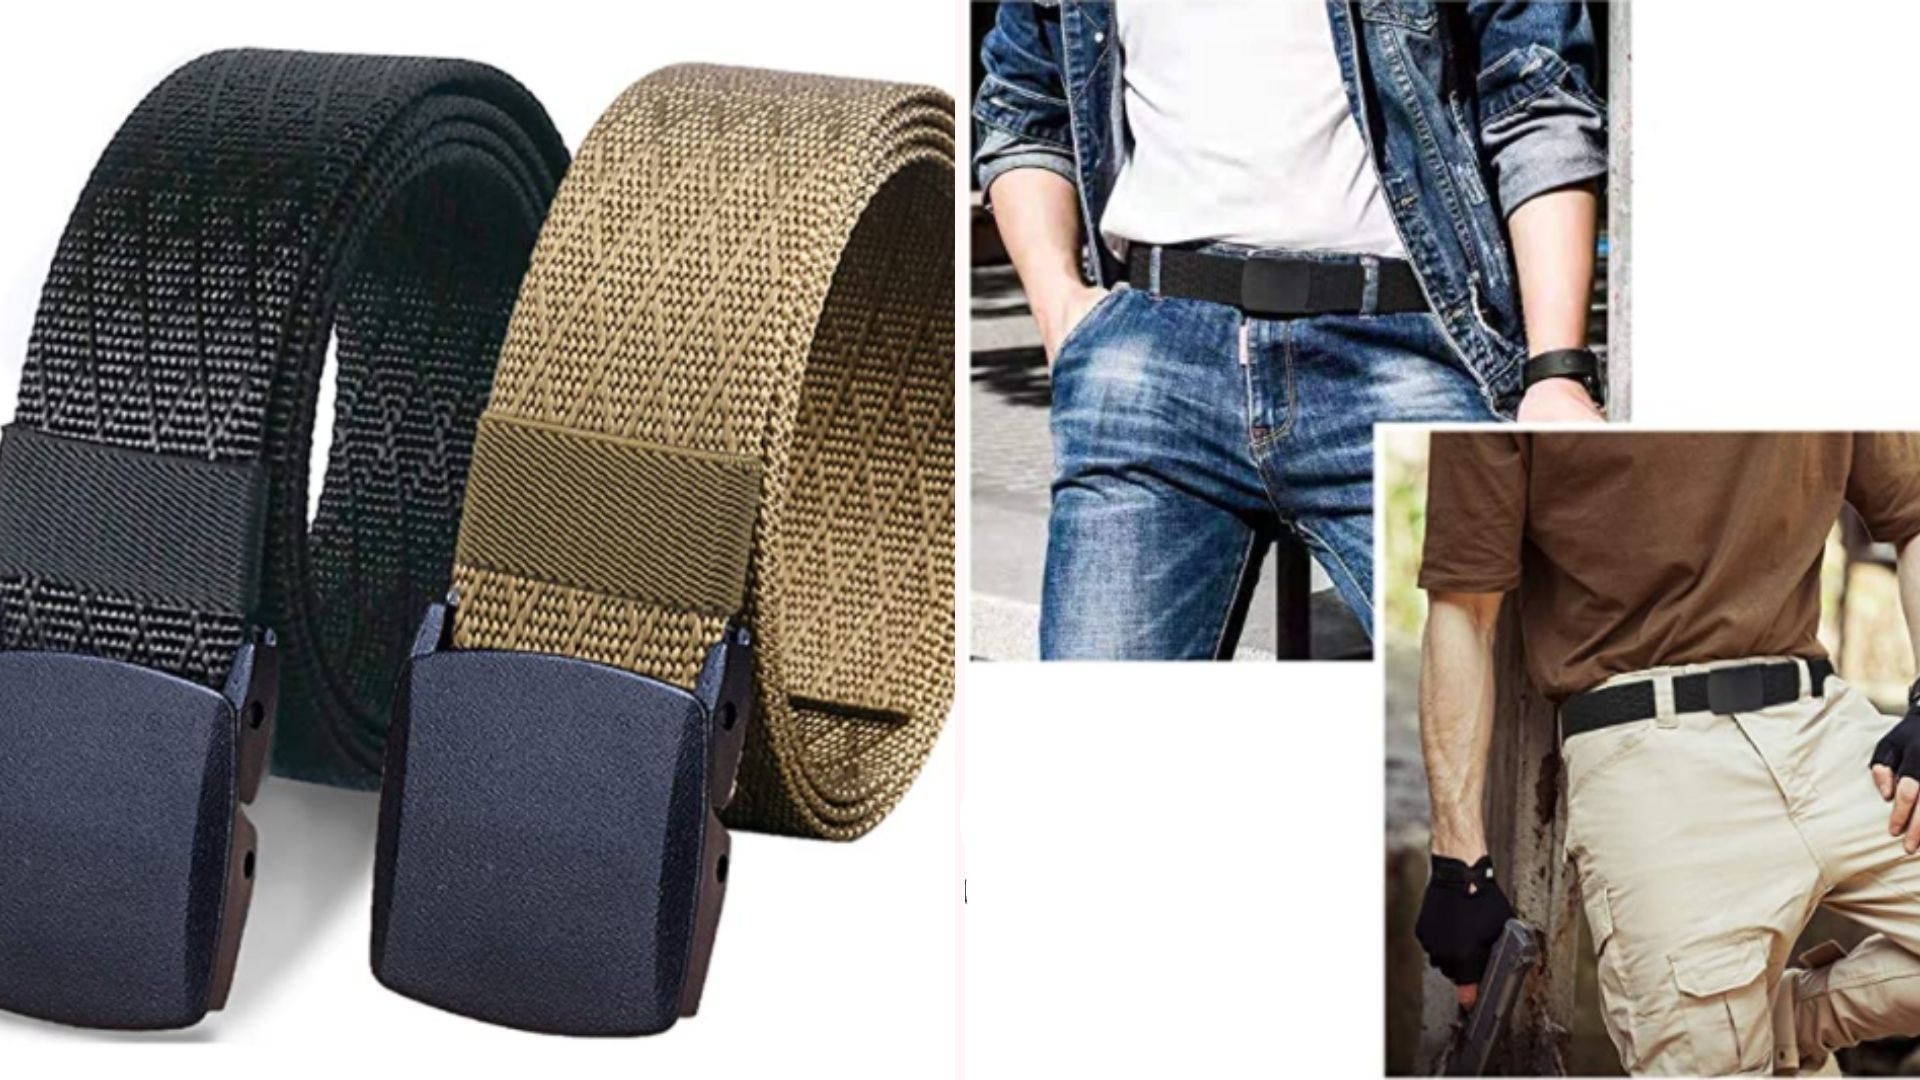 On the left, a side-by-side view of two belts, one black and one tan, featuring nylon material and a plastic belt buckle. On the right, two models, one in casual attire and one in outdoor gear, wear the belt.